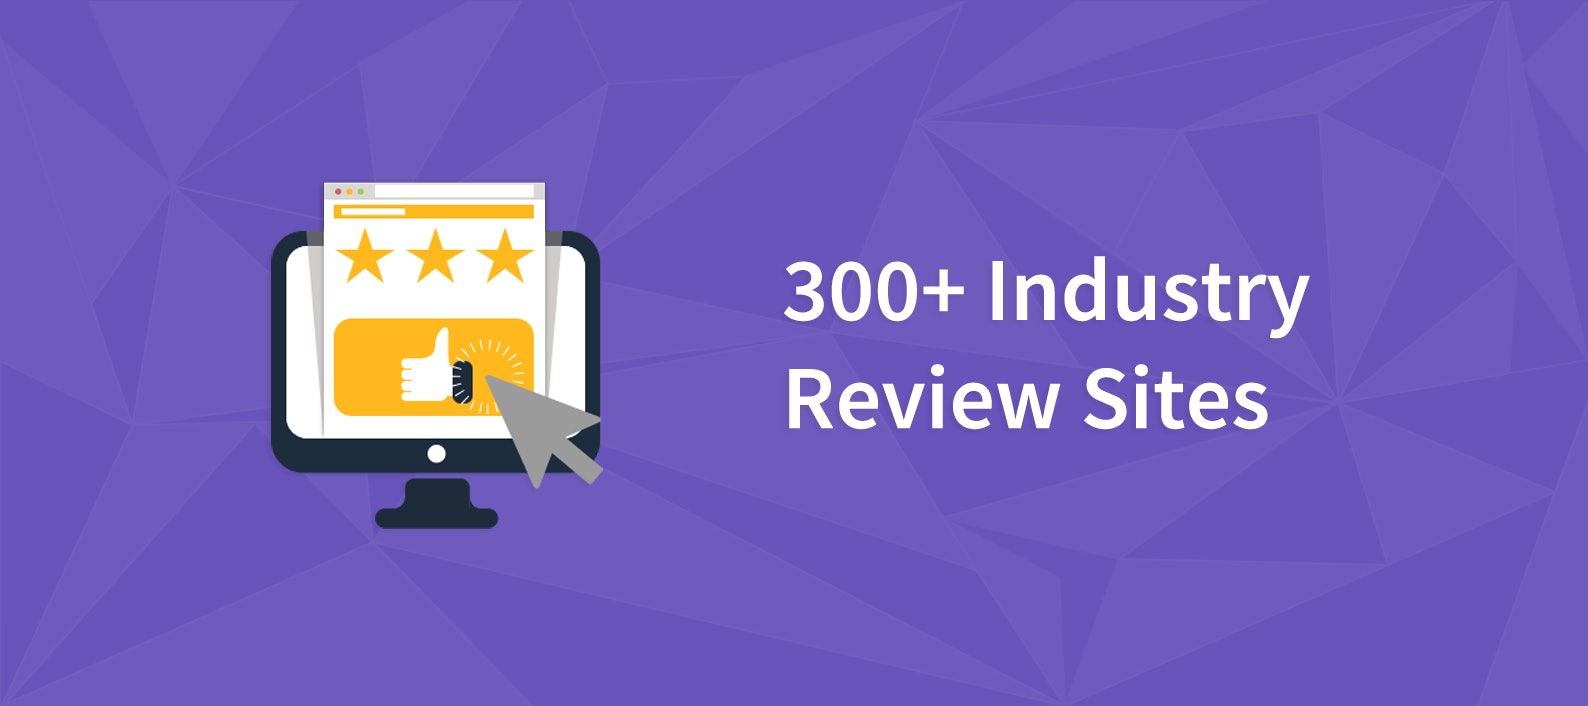 300 industry review sites